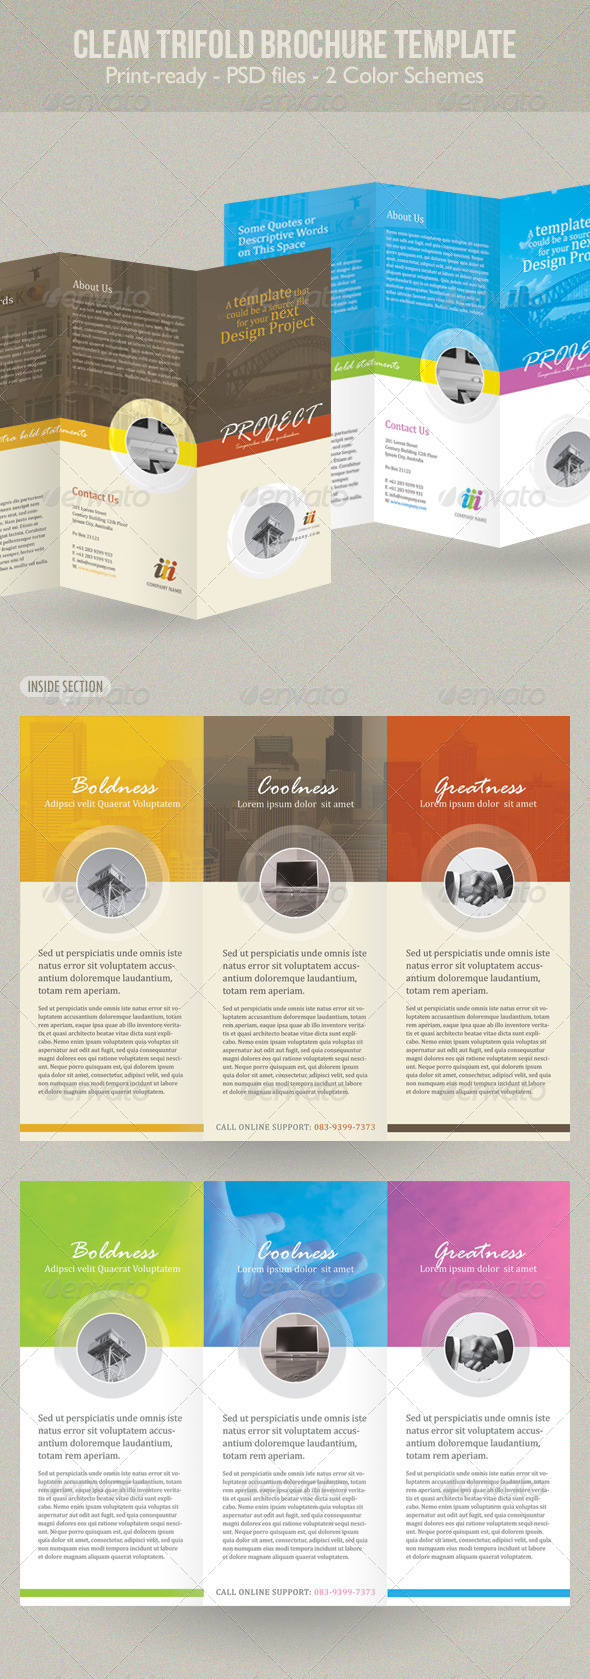 print brochure templates - printable trifold brochure templates